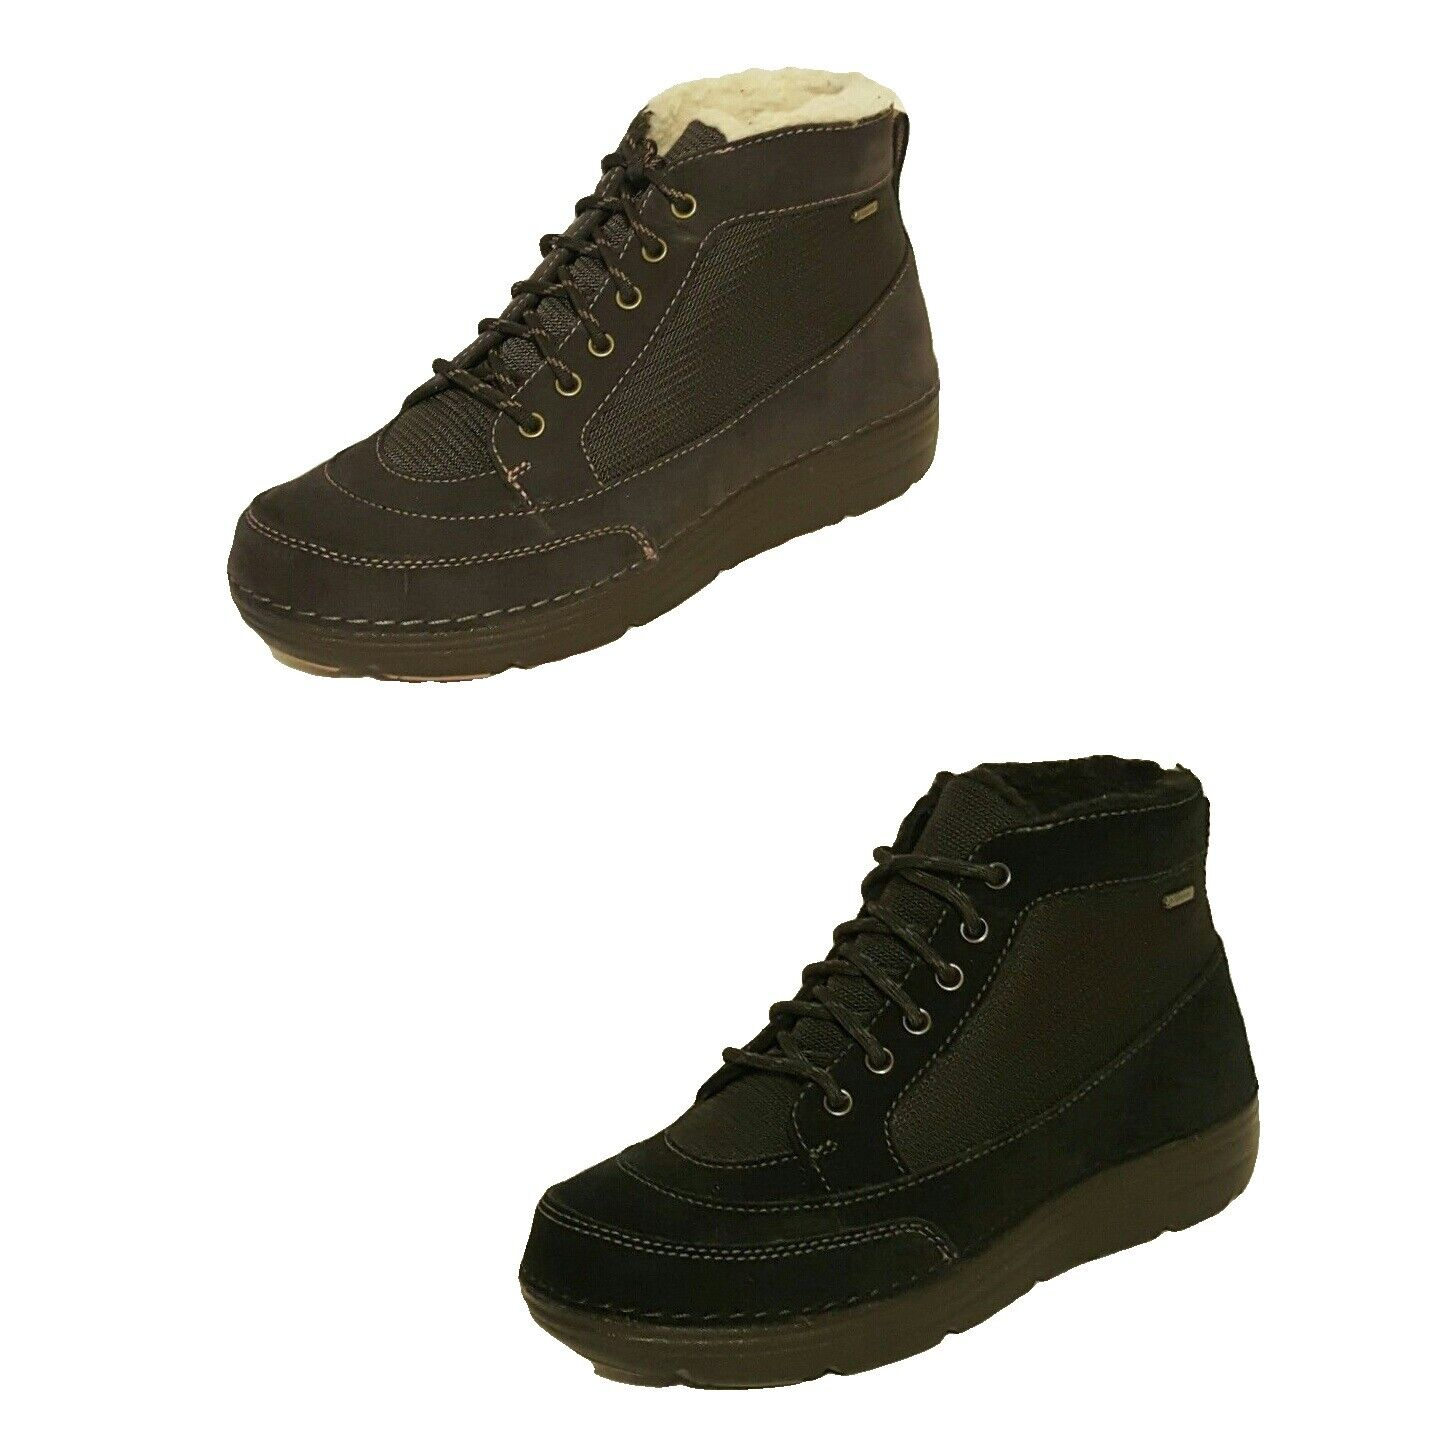 CLARKS  NELIA SAGE  GTX GORE-TEX SUEDE LEATHER LADIES WALKING BOOTS ANKLE BOOTS